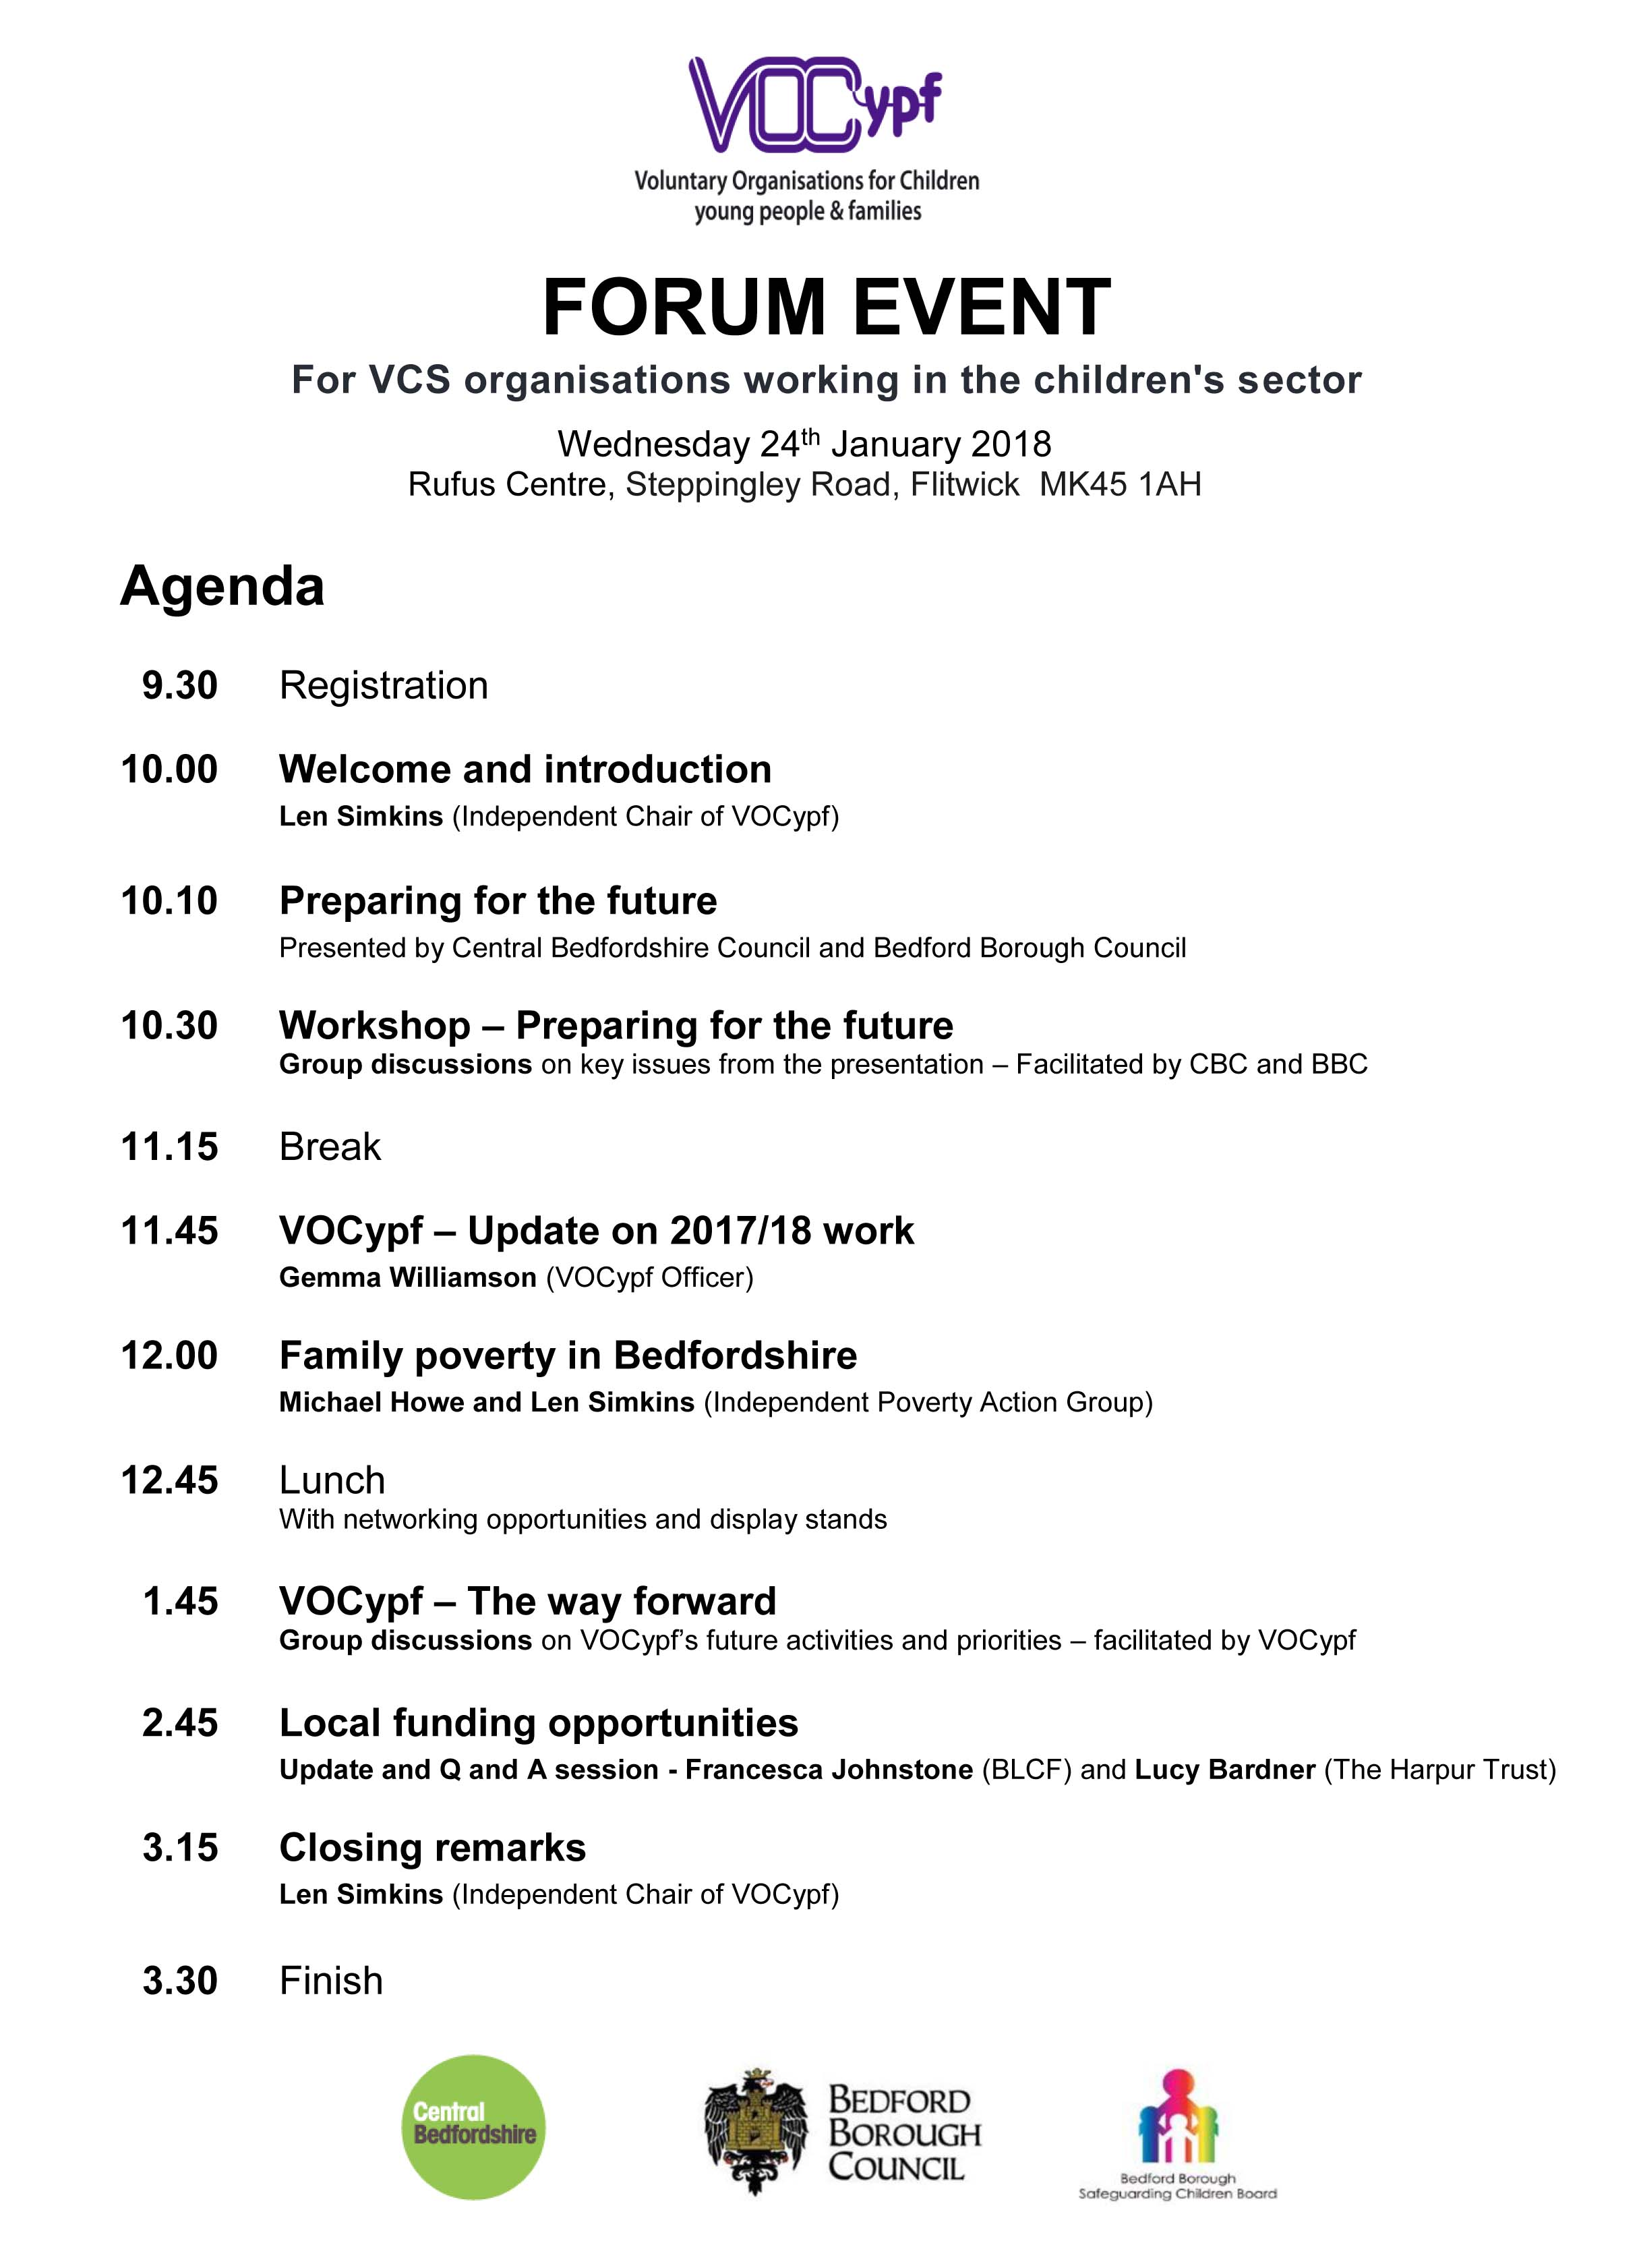 if you are unable to read the agenda here, please contact us for a copy to be sent